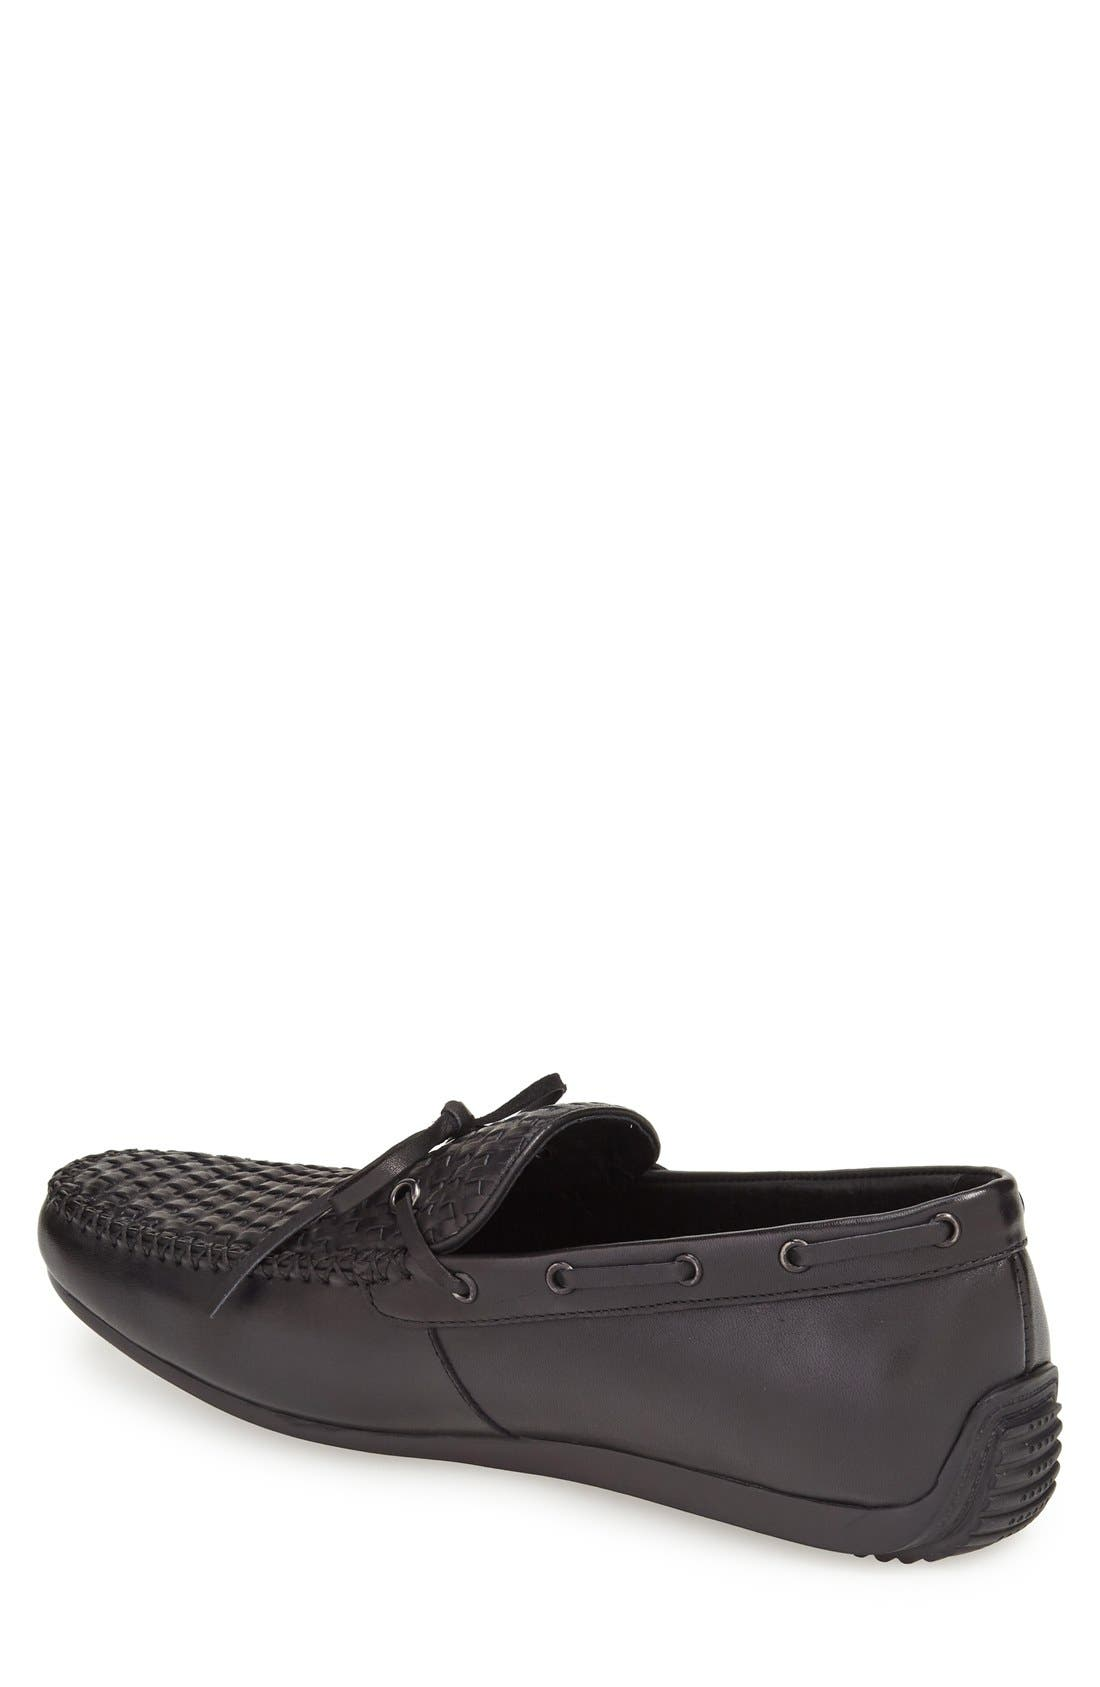 'Cezanne' Woven Tie Loafer,                             Alternate thumbnail 2, color,                             BLACK